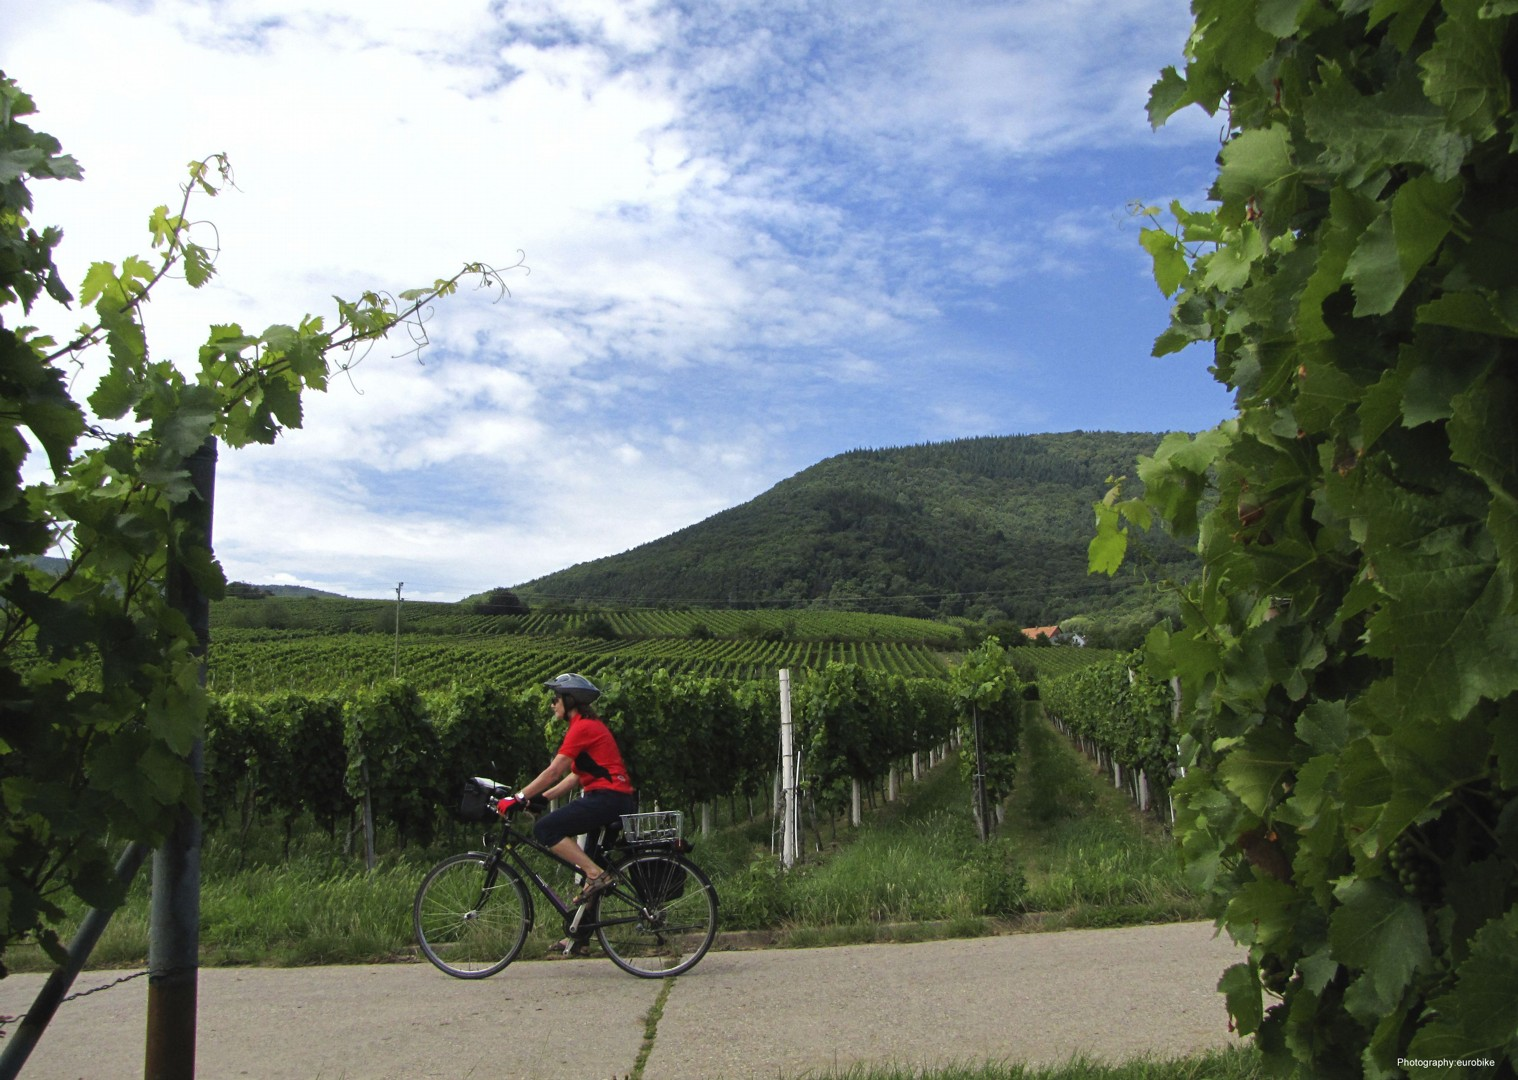 cycling-holiday-leisure-rhine-radweg-strassburg-mainz-pfalz-16_28524219992_o copy.jpg - Germany and France - The Rhine Valley - Self-Guided Leisure Cycling Holiday - Leisure Cycling